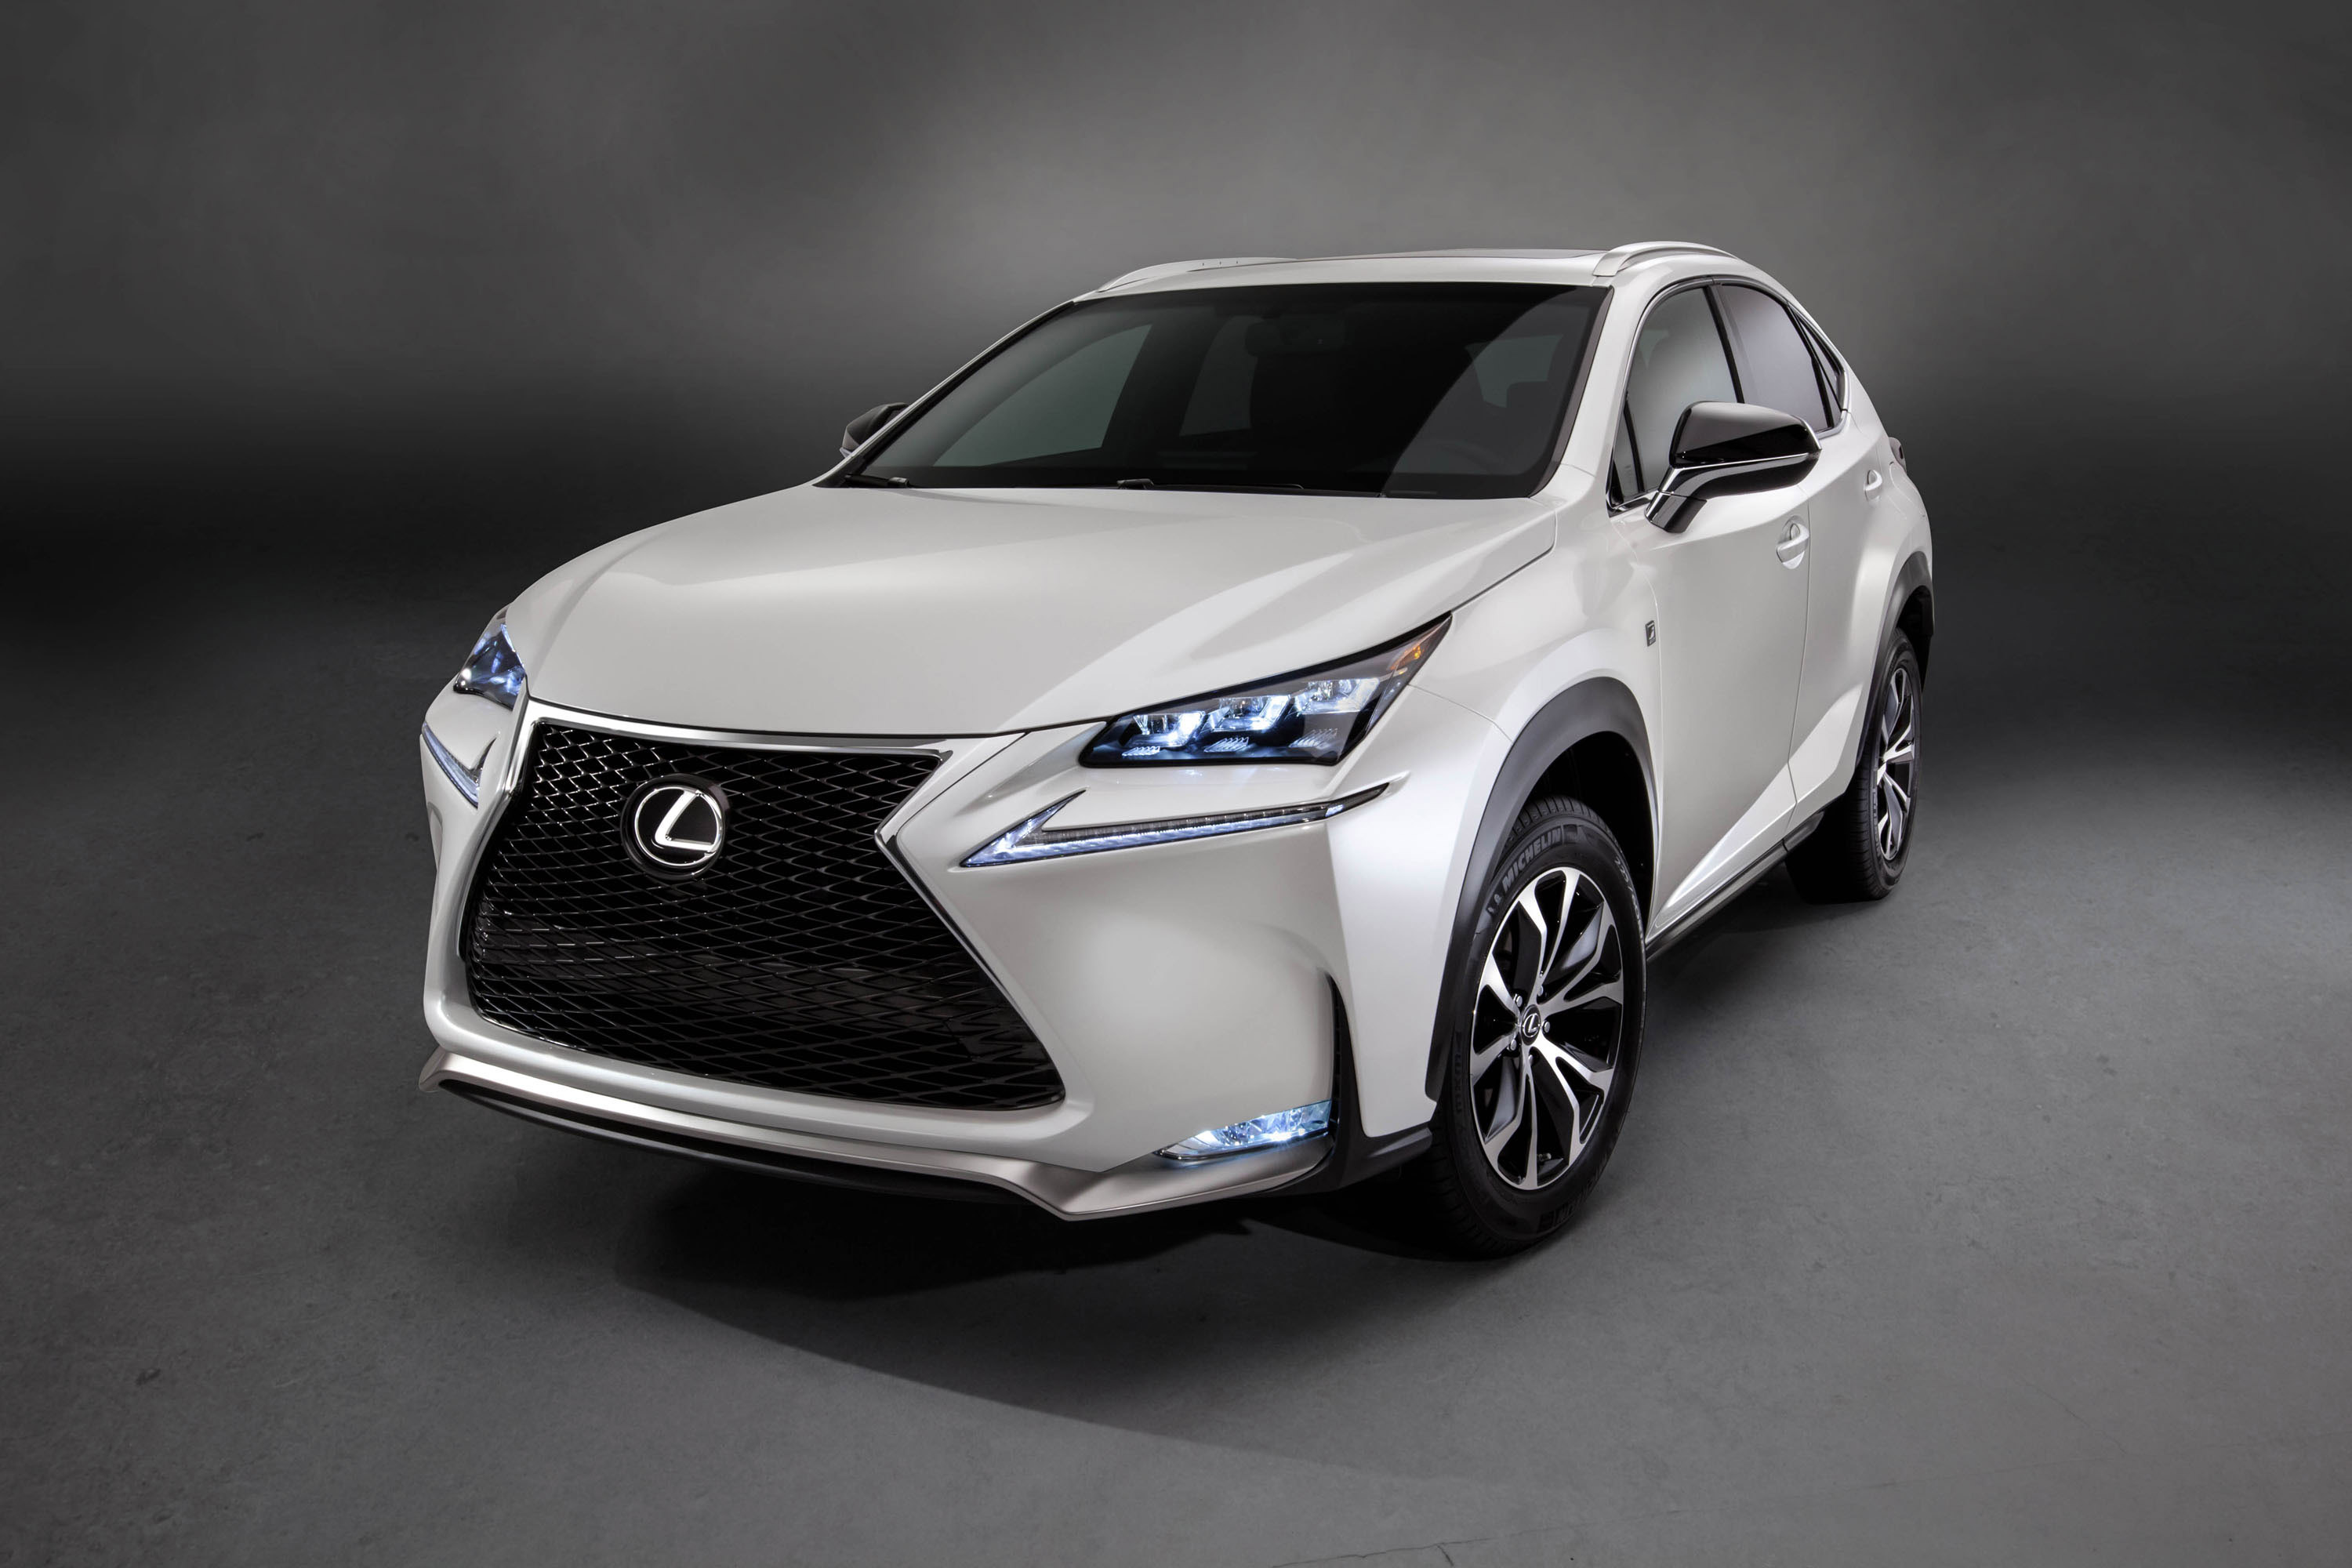 lexus introduces new turbo engine in lexus nx 200t. Black Bedroom Furniture Sets. Home Design Ideas